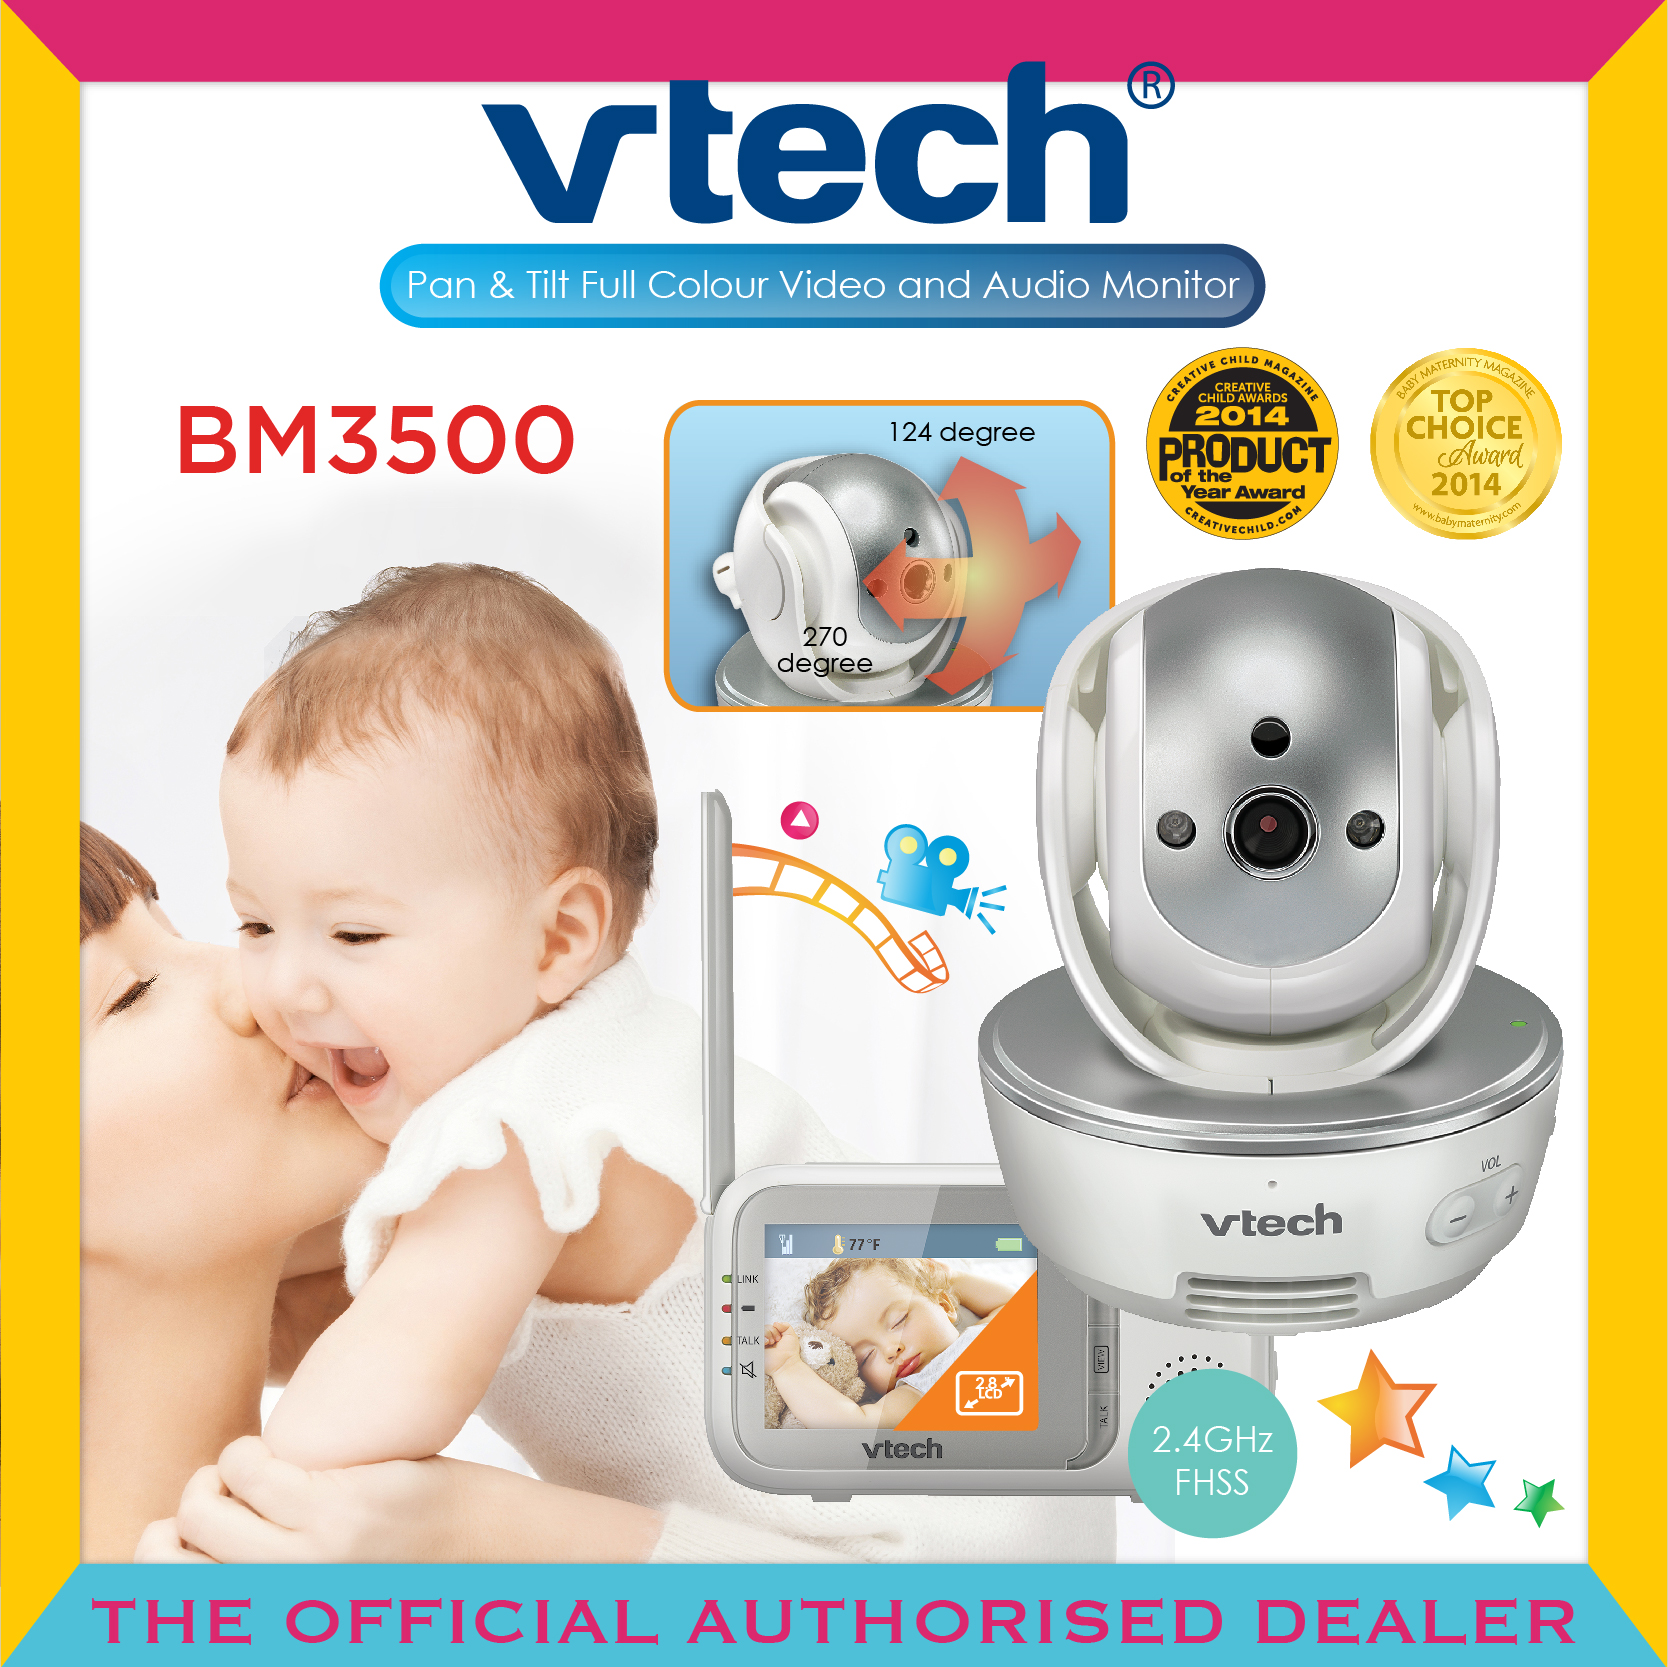 Vtech® BM3500 Audio & Video Baby Monitor